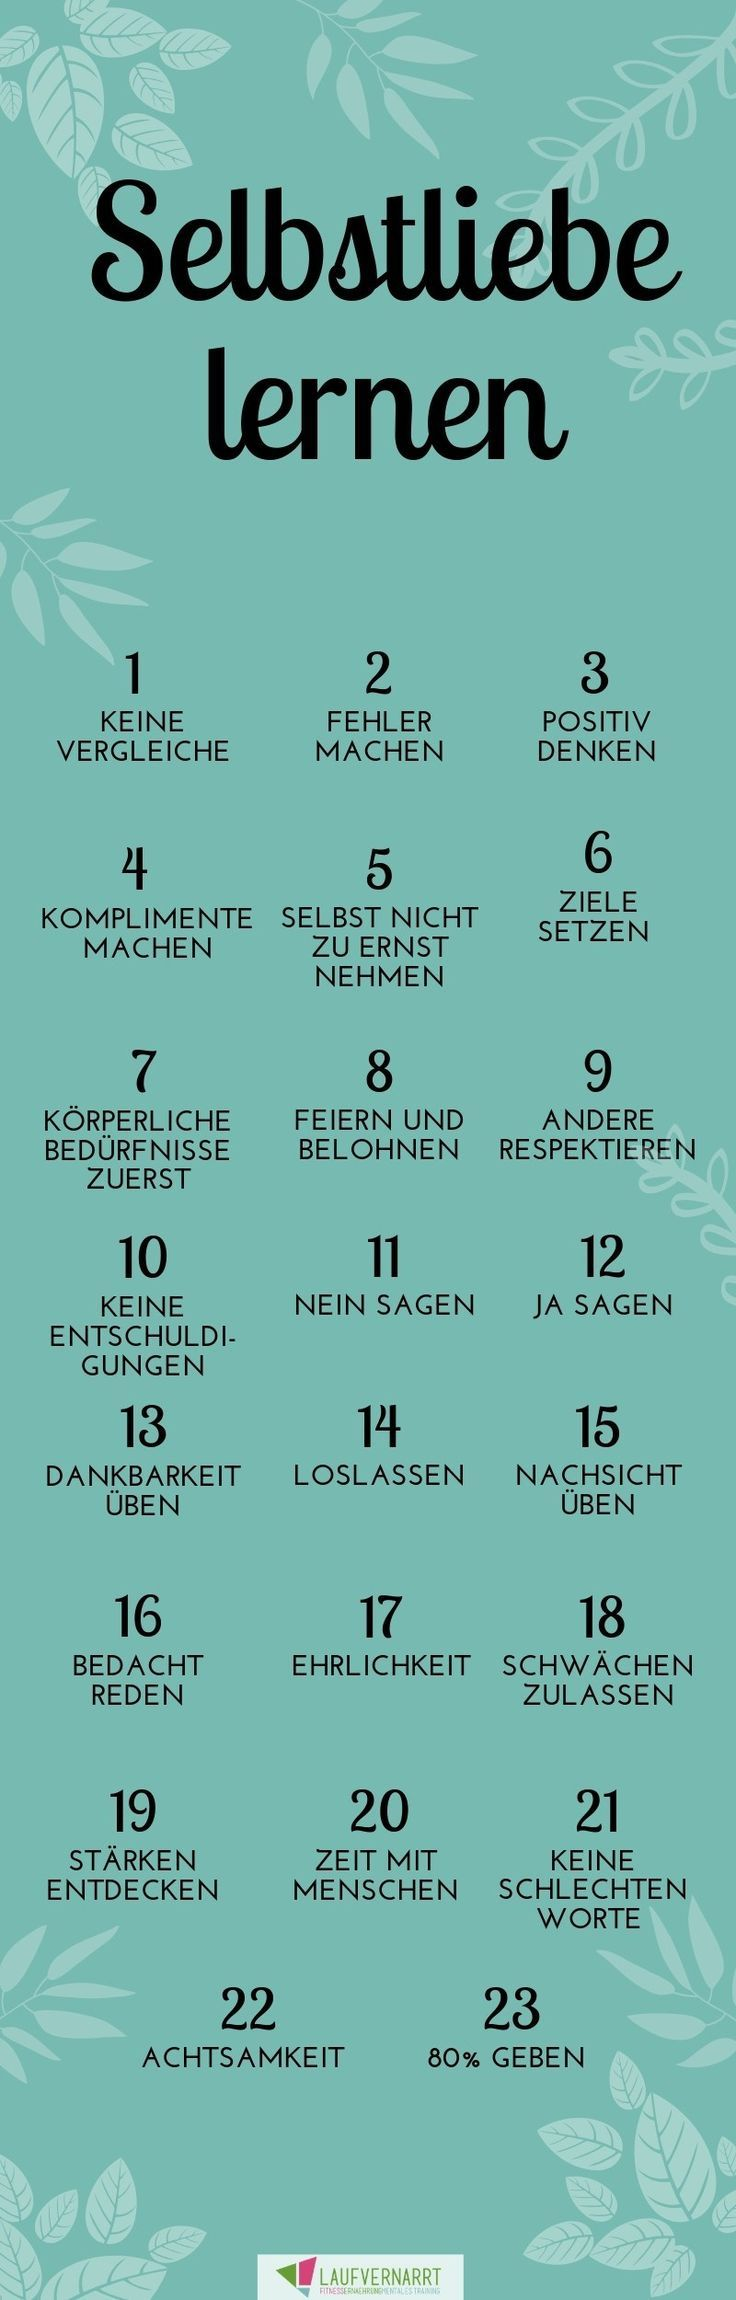 Die Selbstliebe - Ein Kompletter Guide In 23 Punkten Die Selbstliebe - ein kompletter Guide in 23 Punkten Inspirational Quotes inspirational fitness quotes